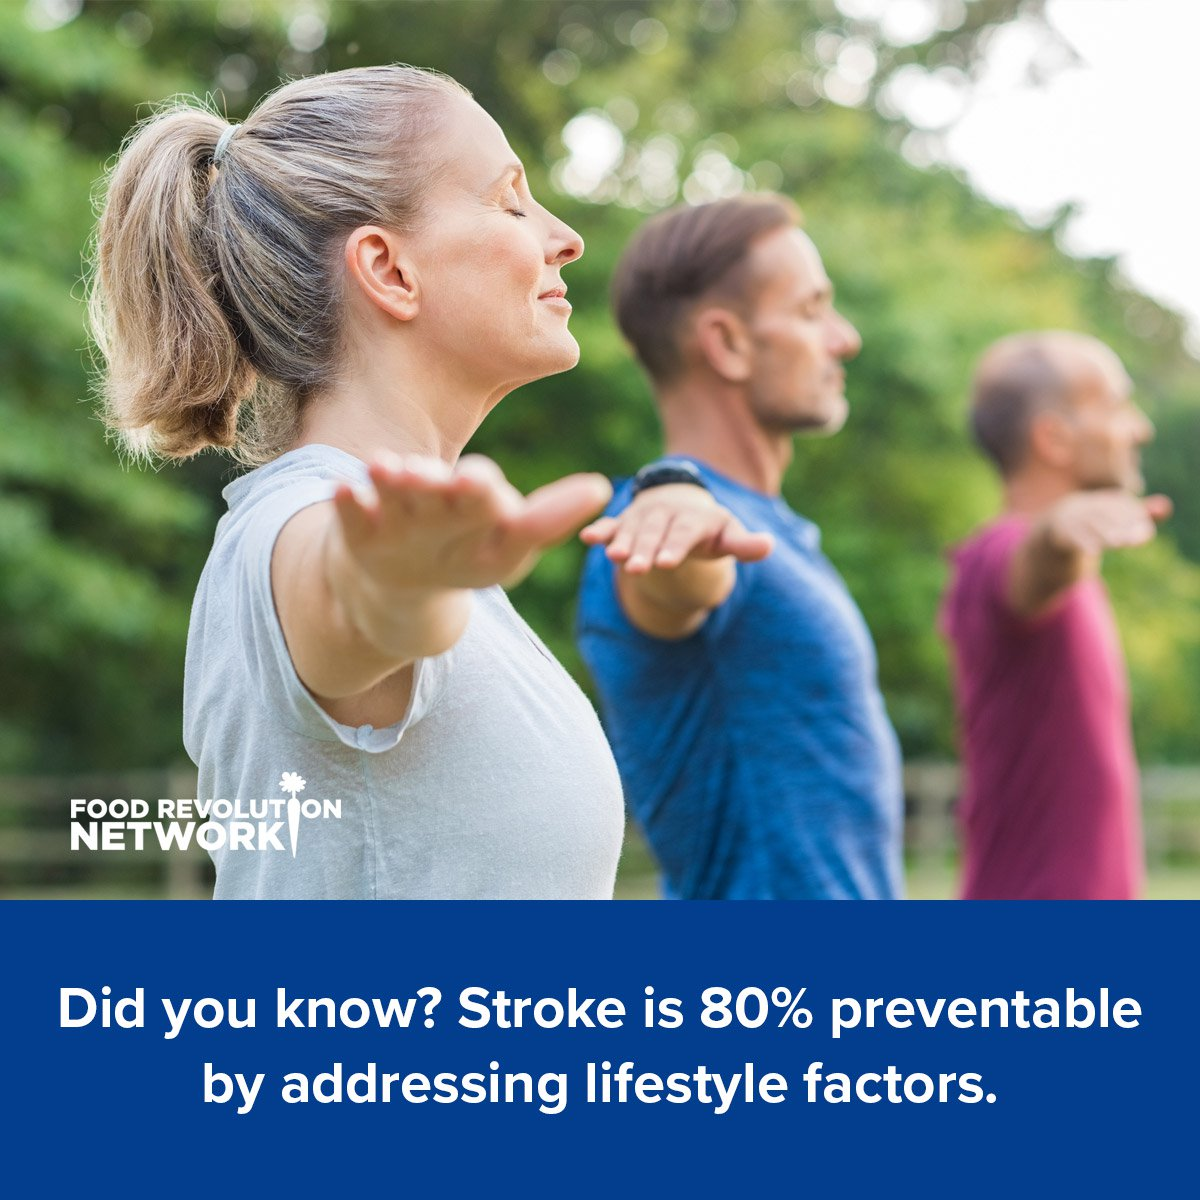 Did you know? Stroke is 80% preventable by addressing lifestyle factors.